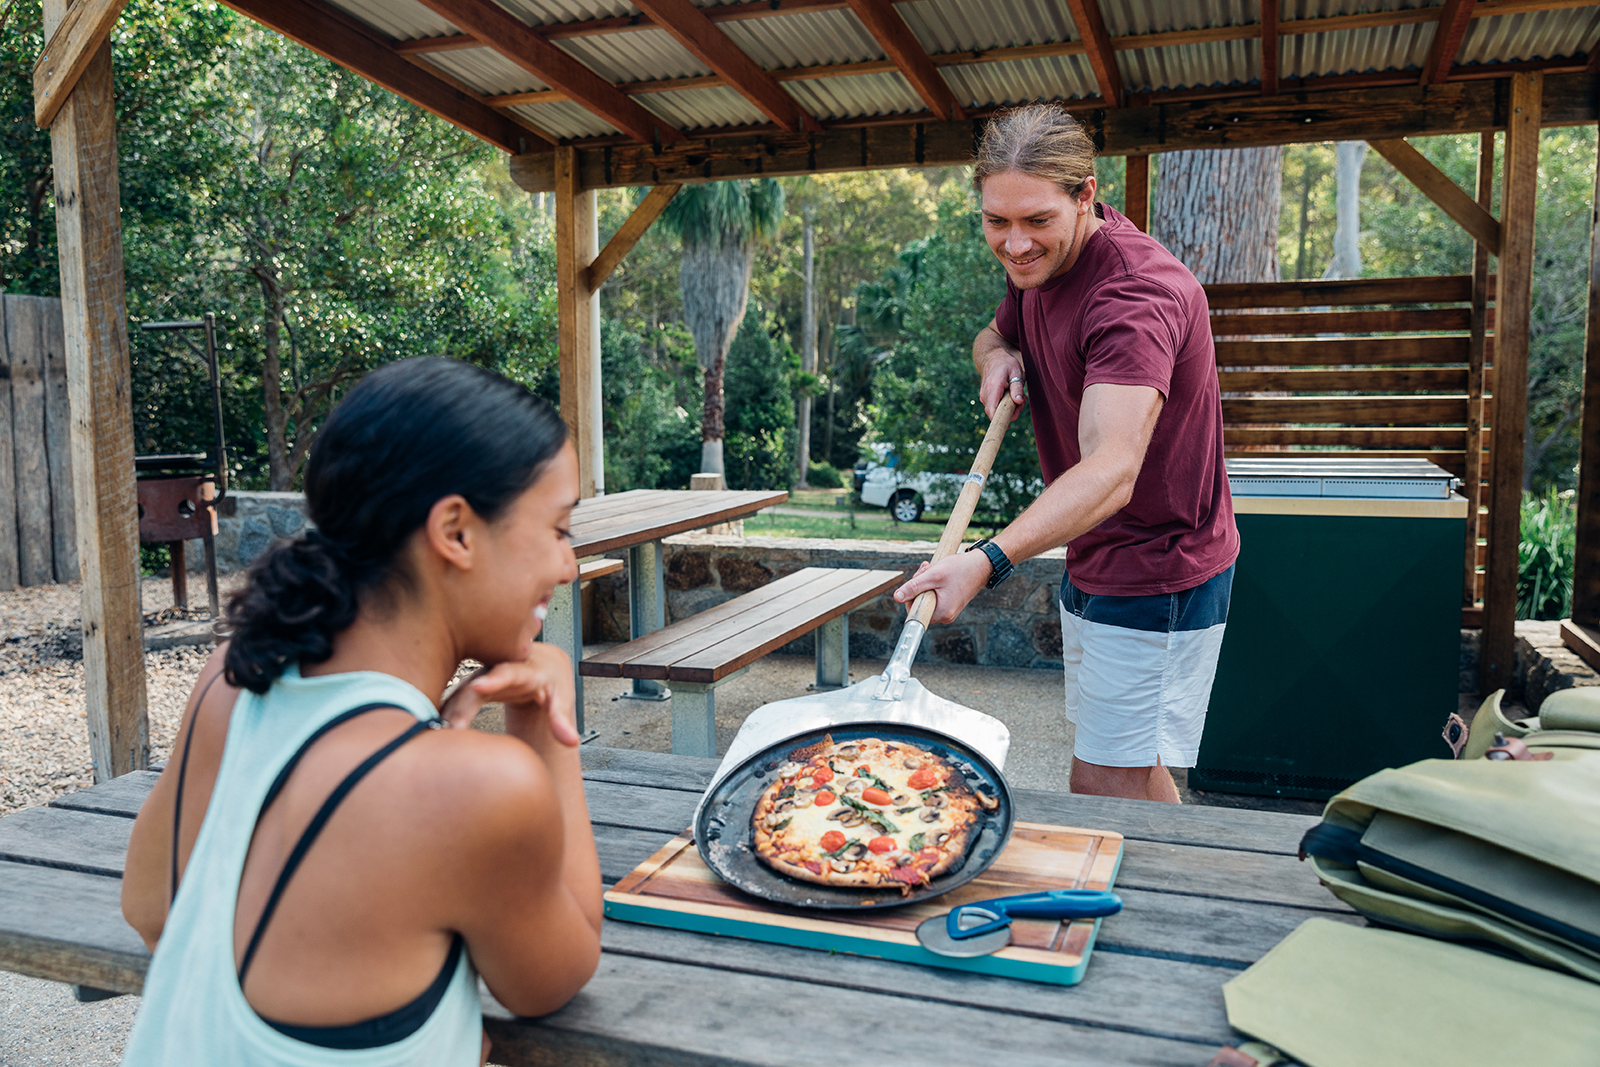 A male and a female enjoying woodfired pizza in Murramarang National Park